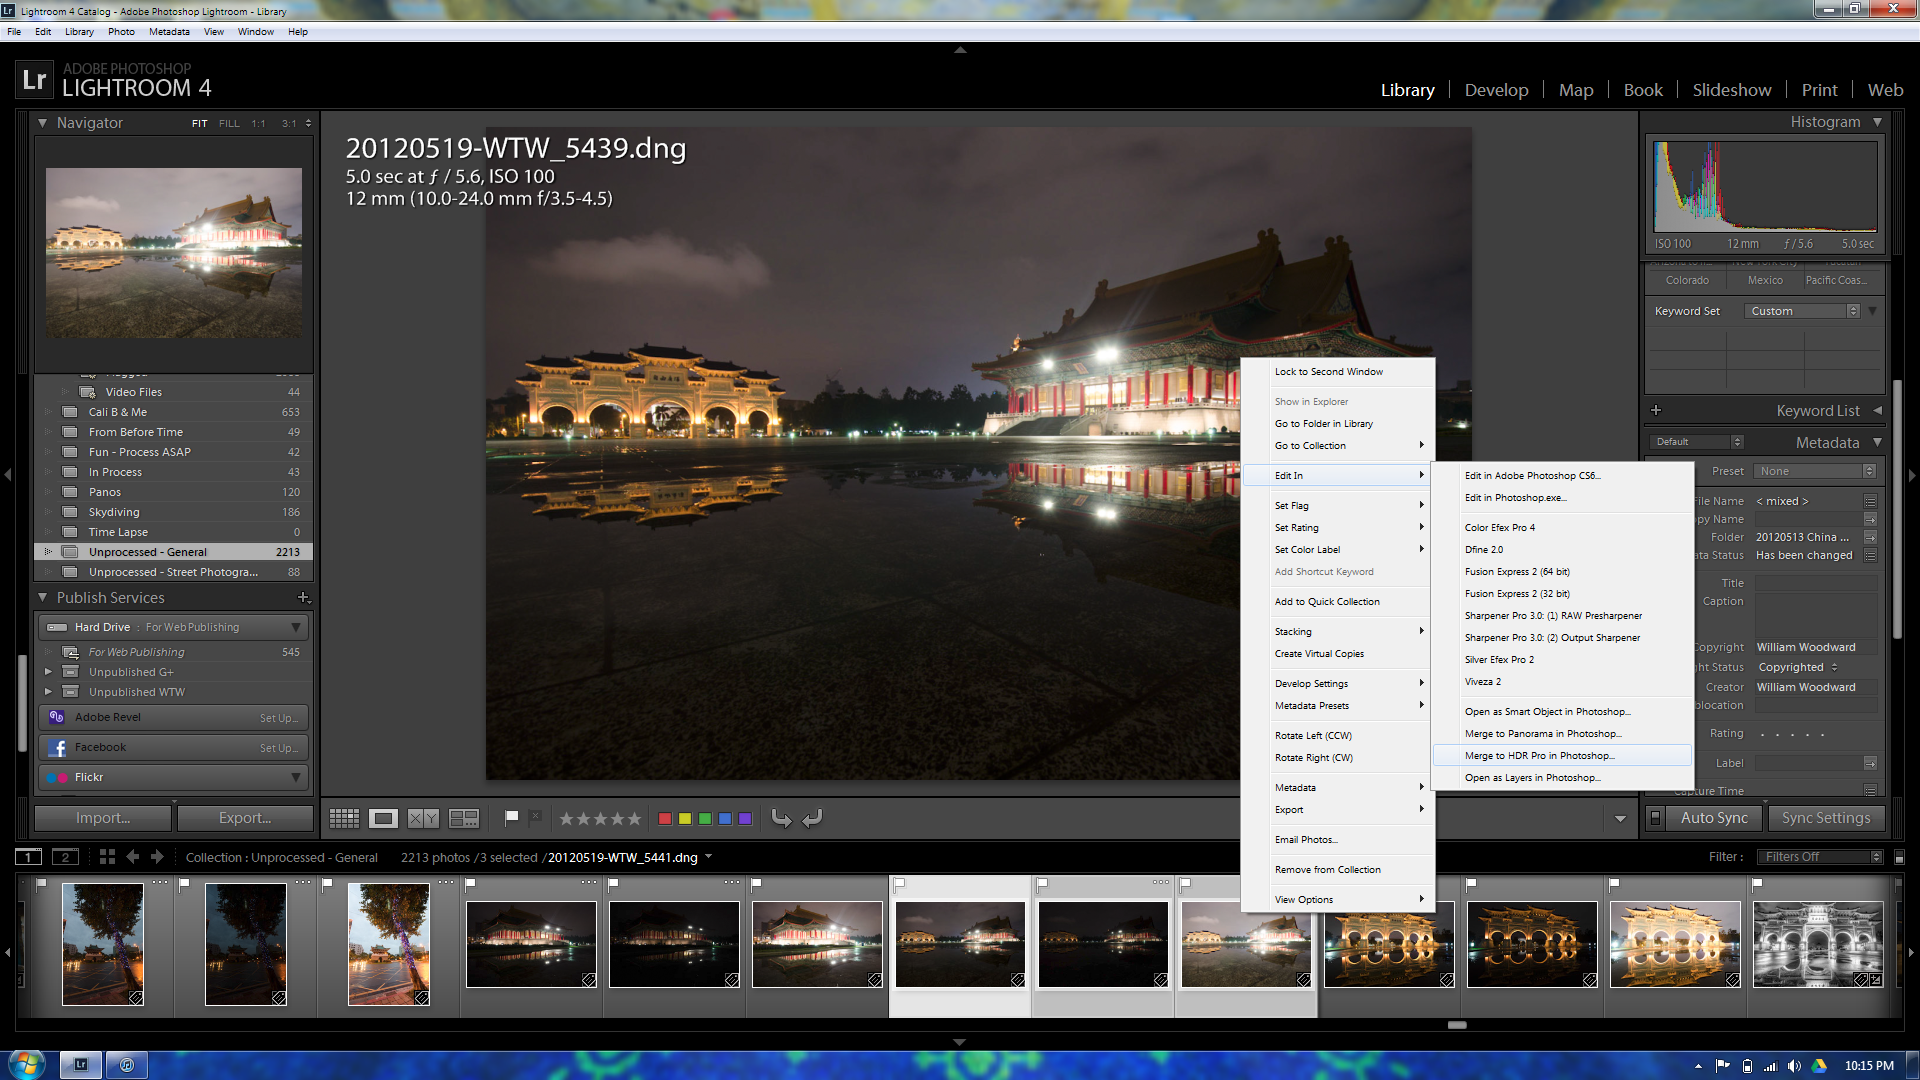 Hdr Beach Tutorial 32-bit-hdr-tutorial-merge